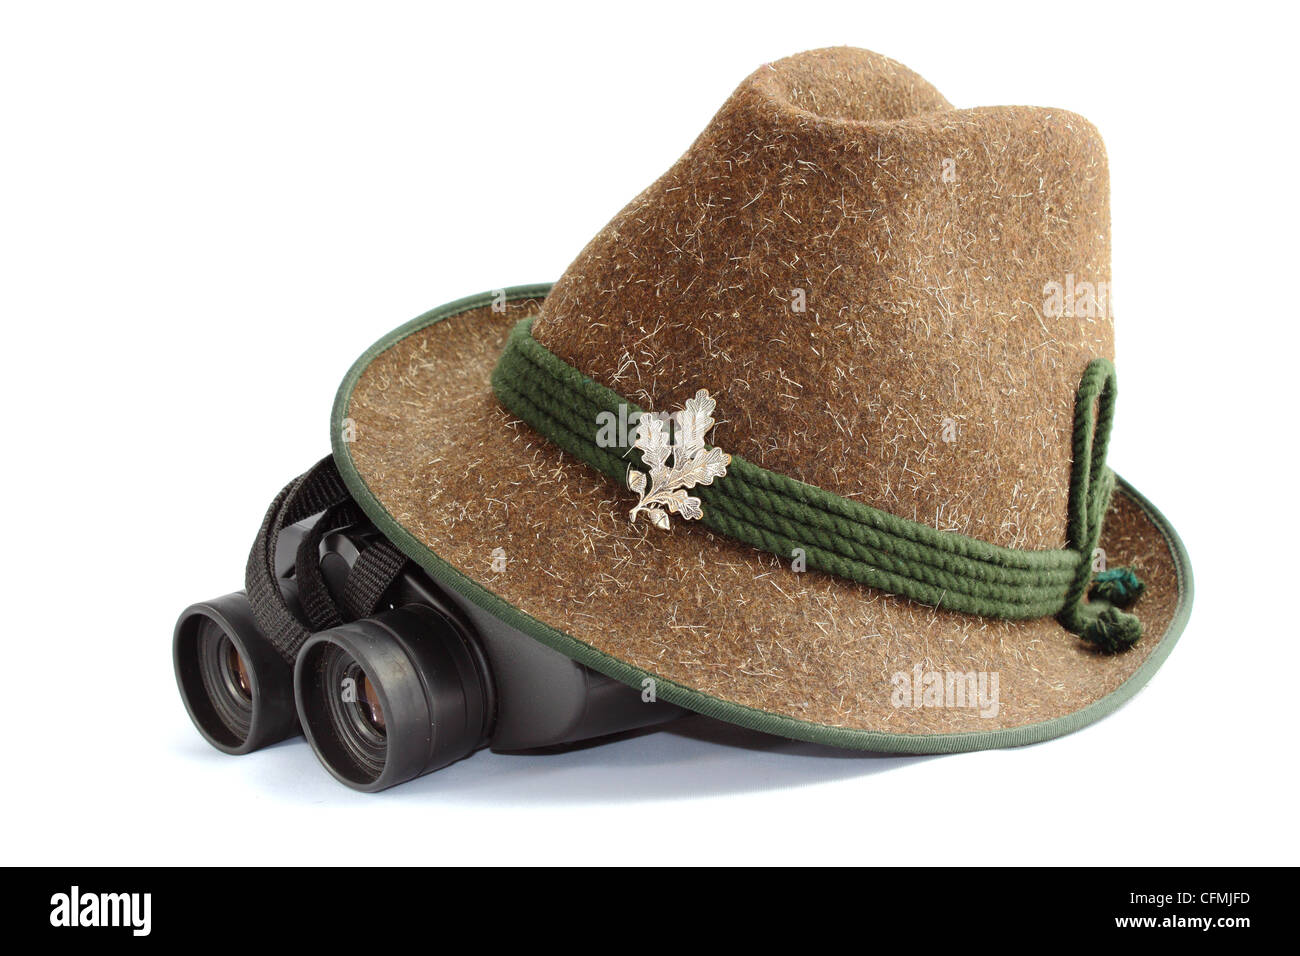 hunting gear - old hunting hat and binoculars - Stock Image